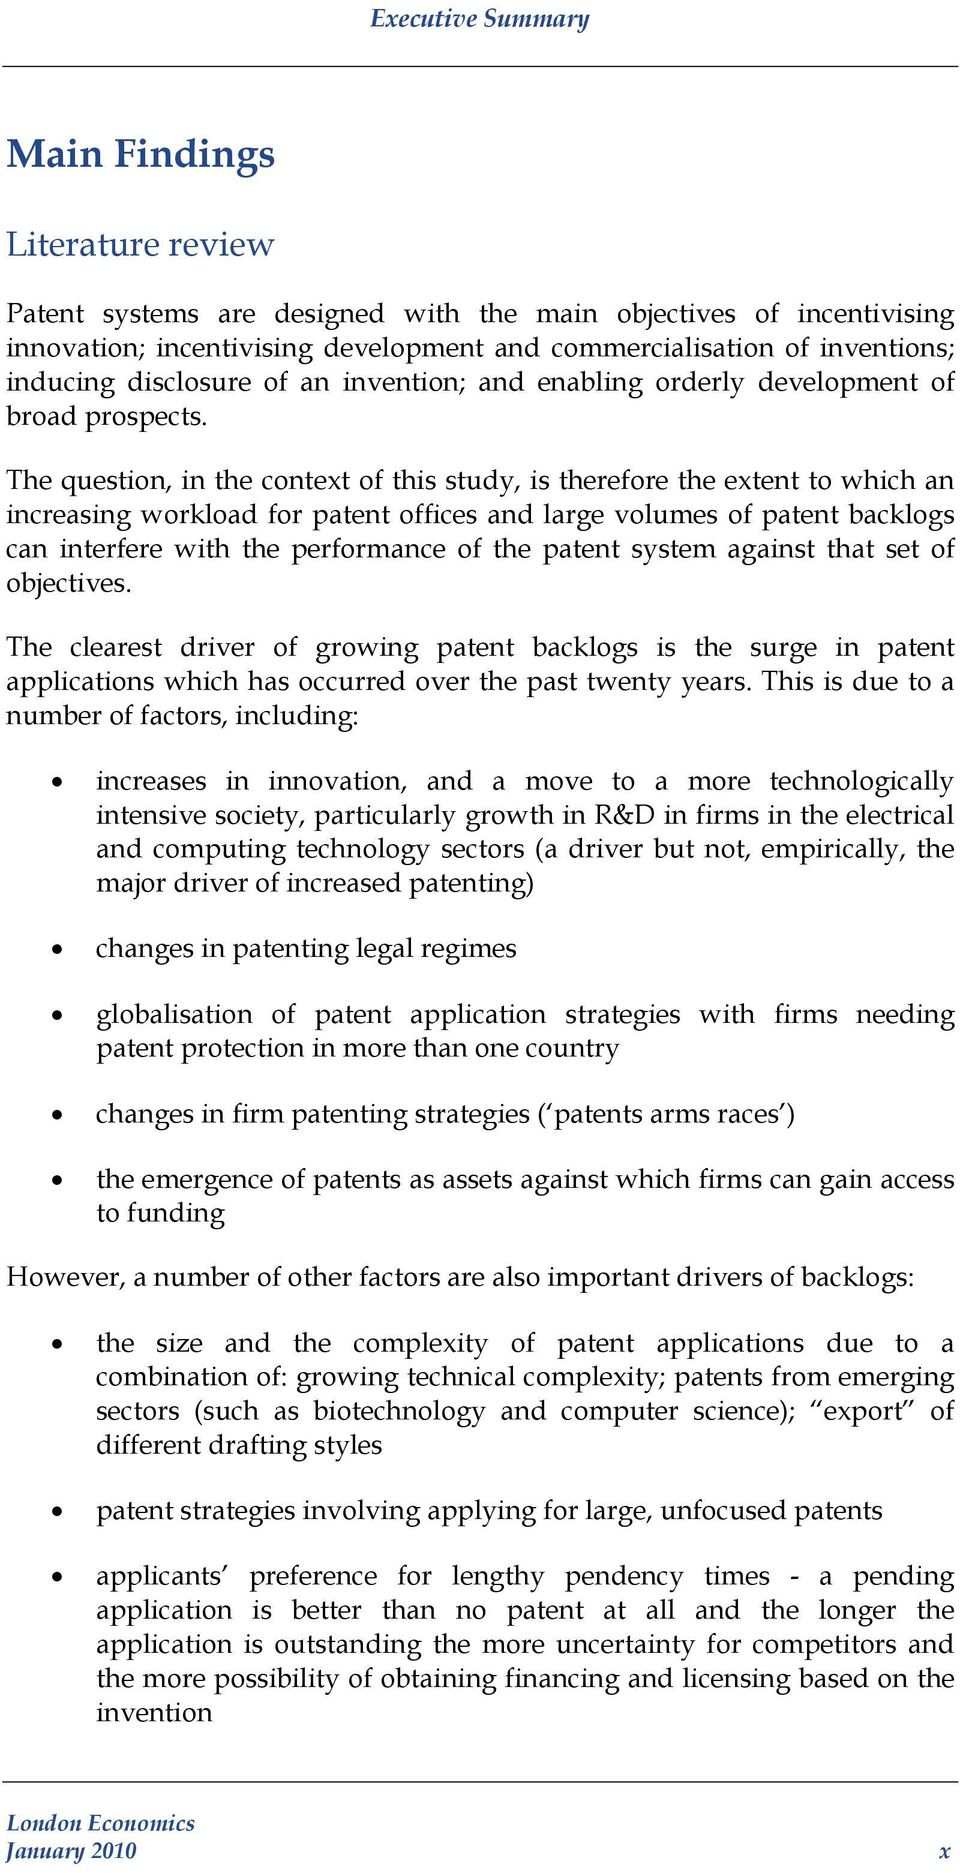 The question, in the context of this study, is therefore the extent to which an increasing workload for patent offices and large volumes of patent backlogs can interfere with the performance of the